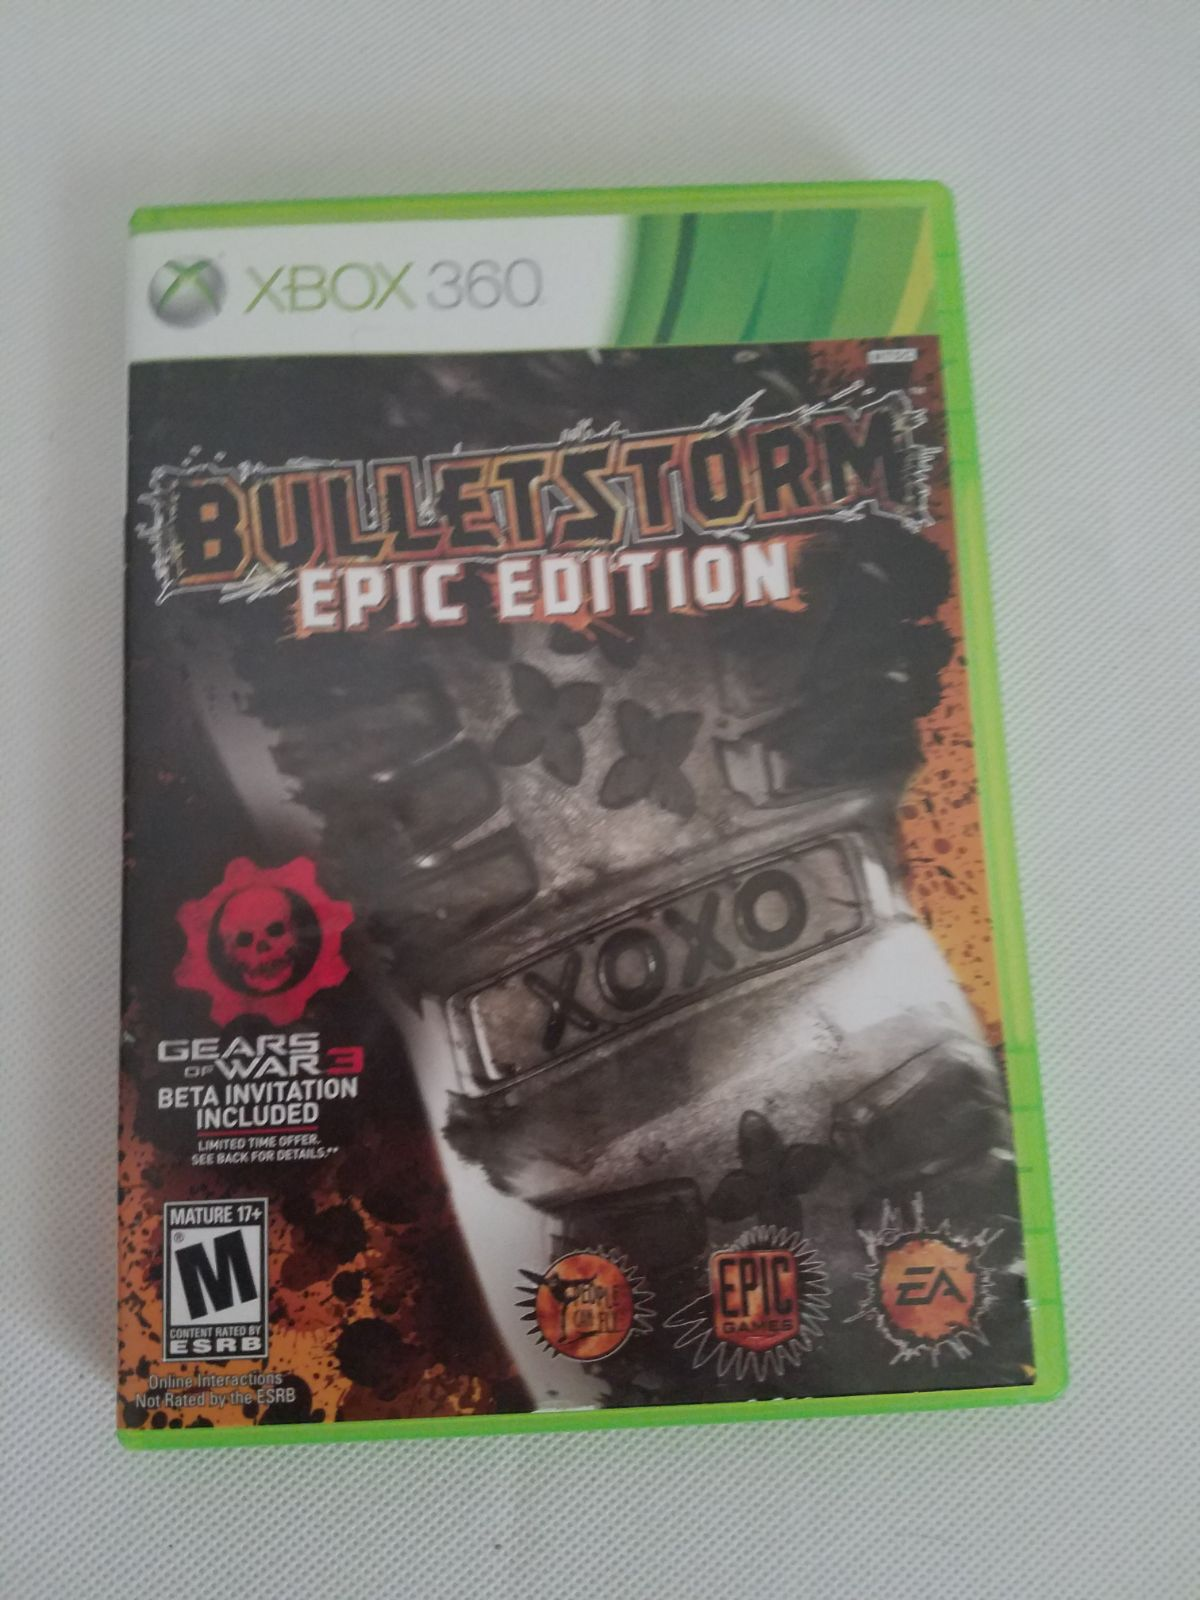 Bulletsrorm Epic Edition Xbox 360